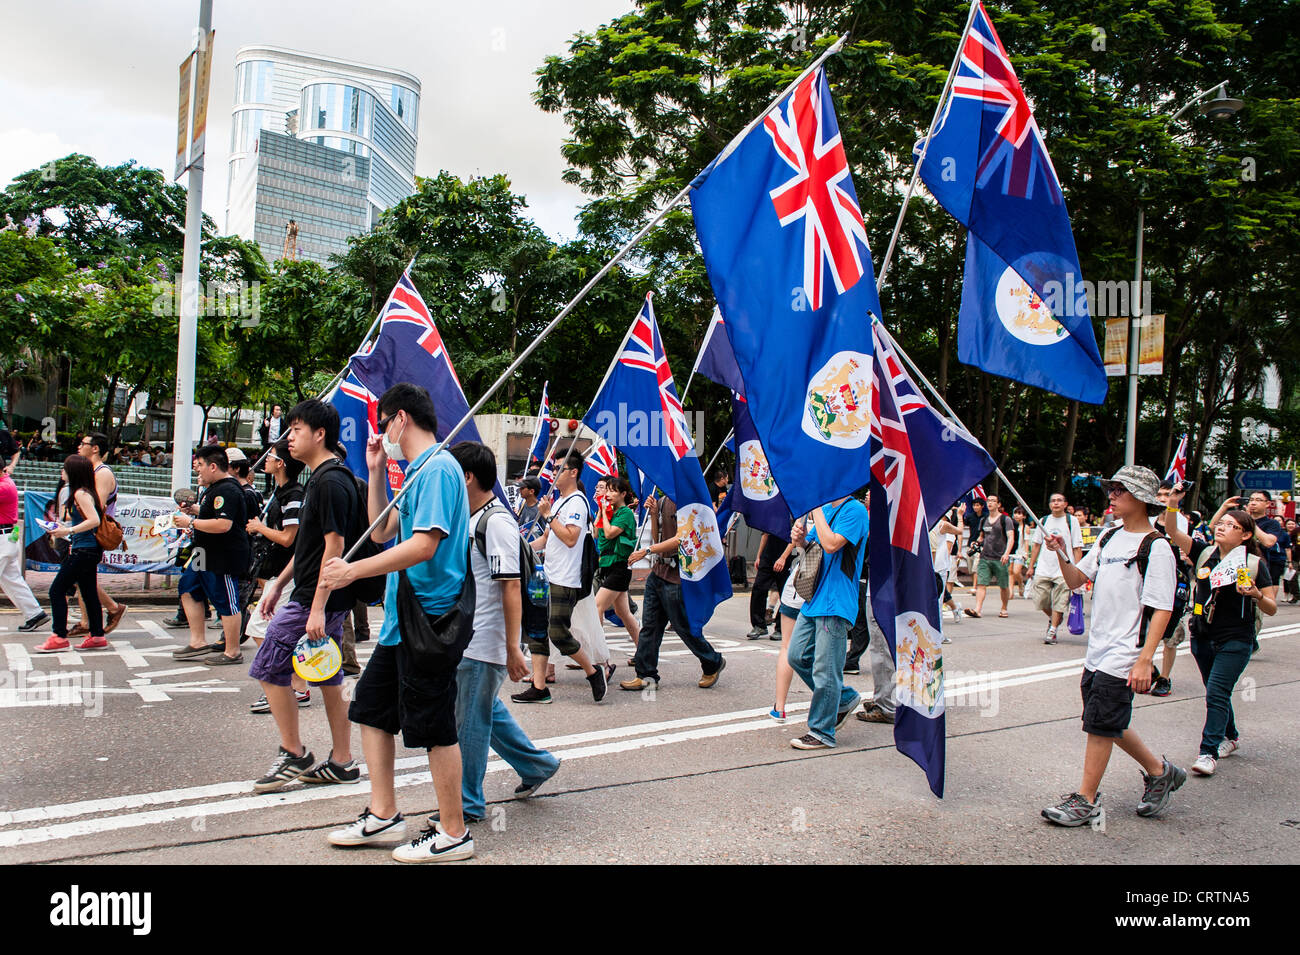 Very big handover demonstration with possibly 400.000 demonstrators against the new Chief Executive CY Leung. - Stock Image